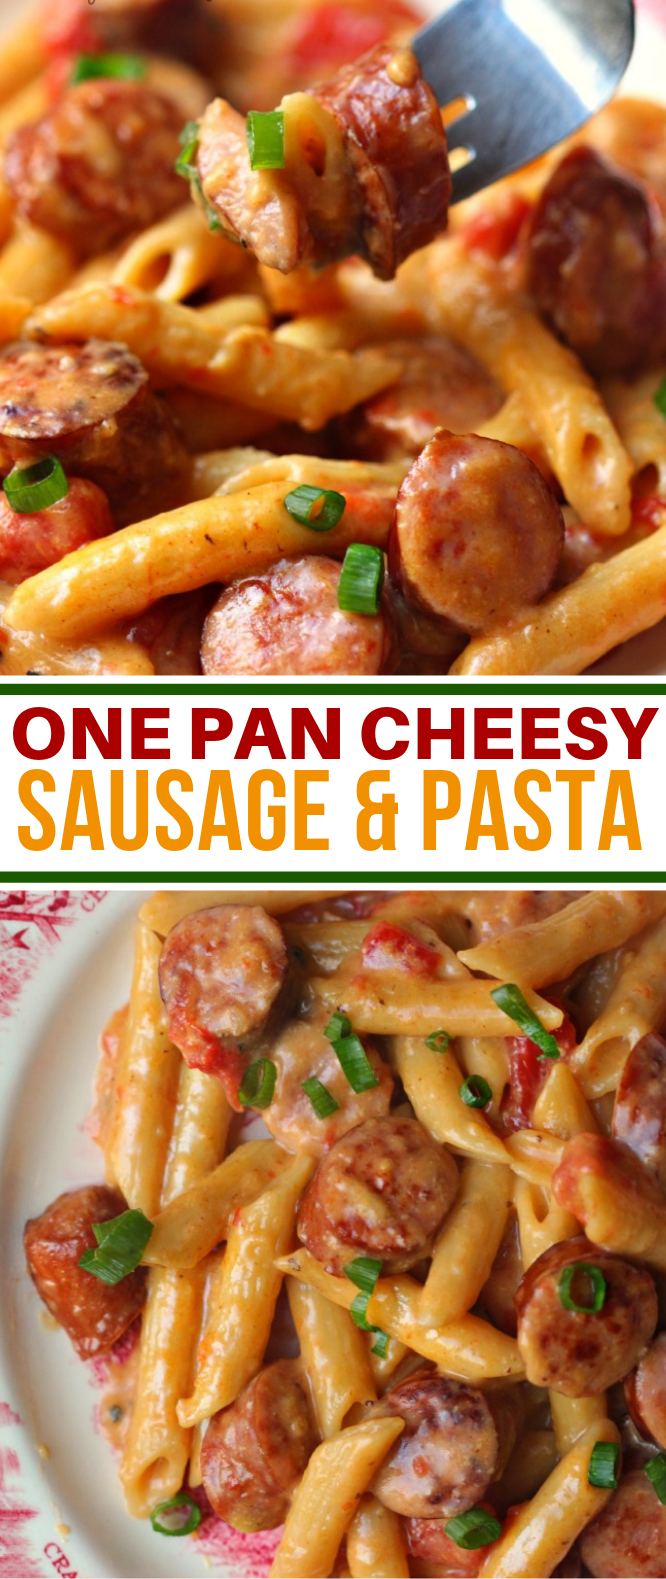 ONE PAN CHEESY SMOKED SAUSAGE & PASTA RECIPE #dinner #pastarecipe #sausagedinner